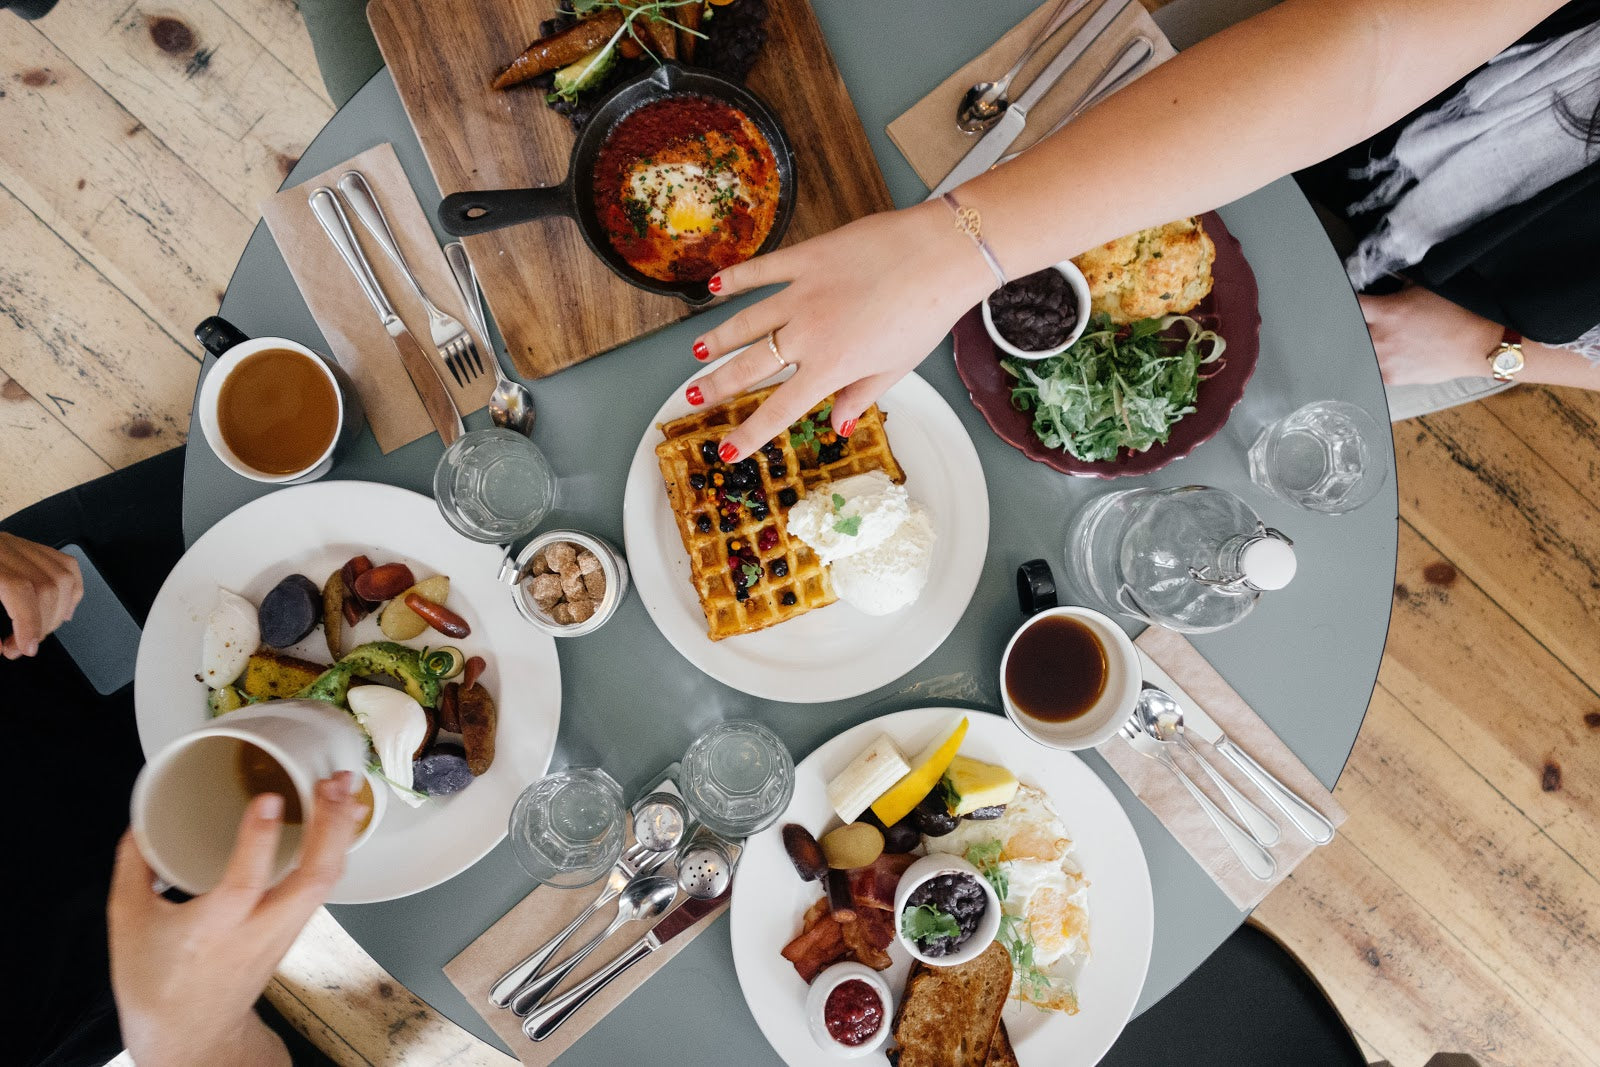 How to get rid of bloating: A table of people eating rich breakfast foods